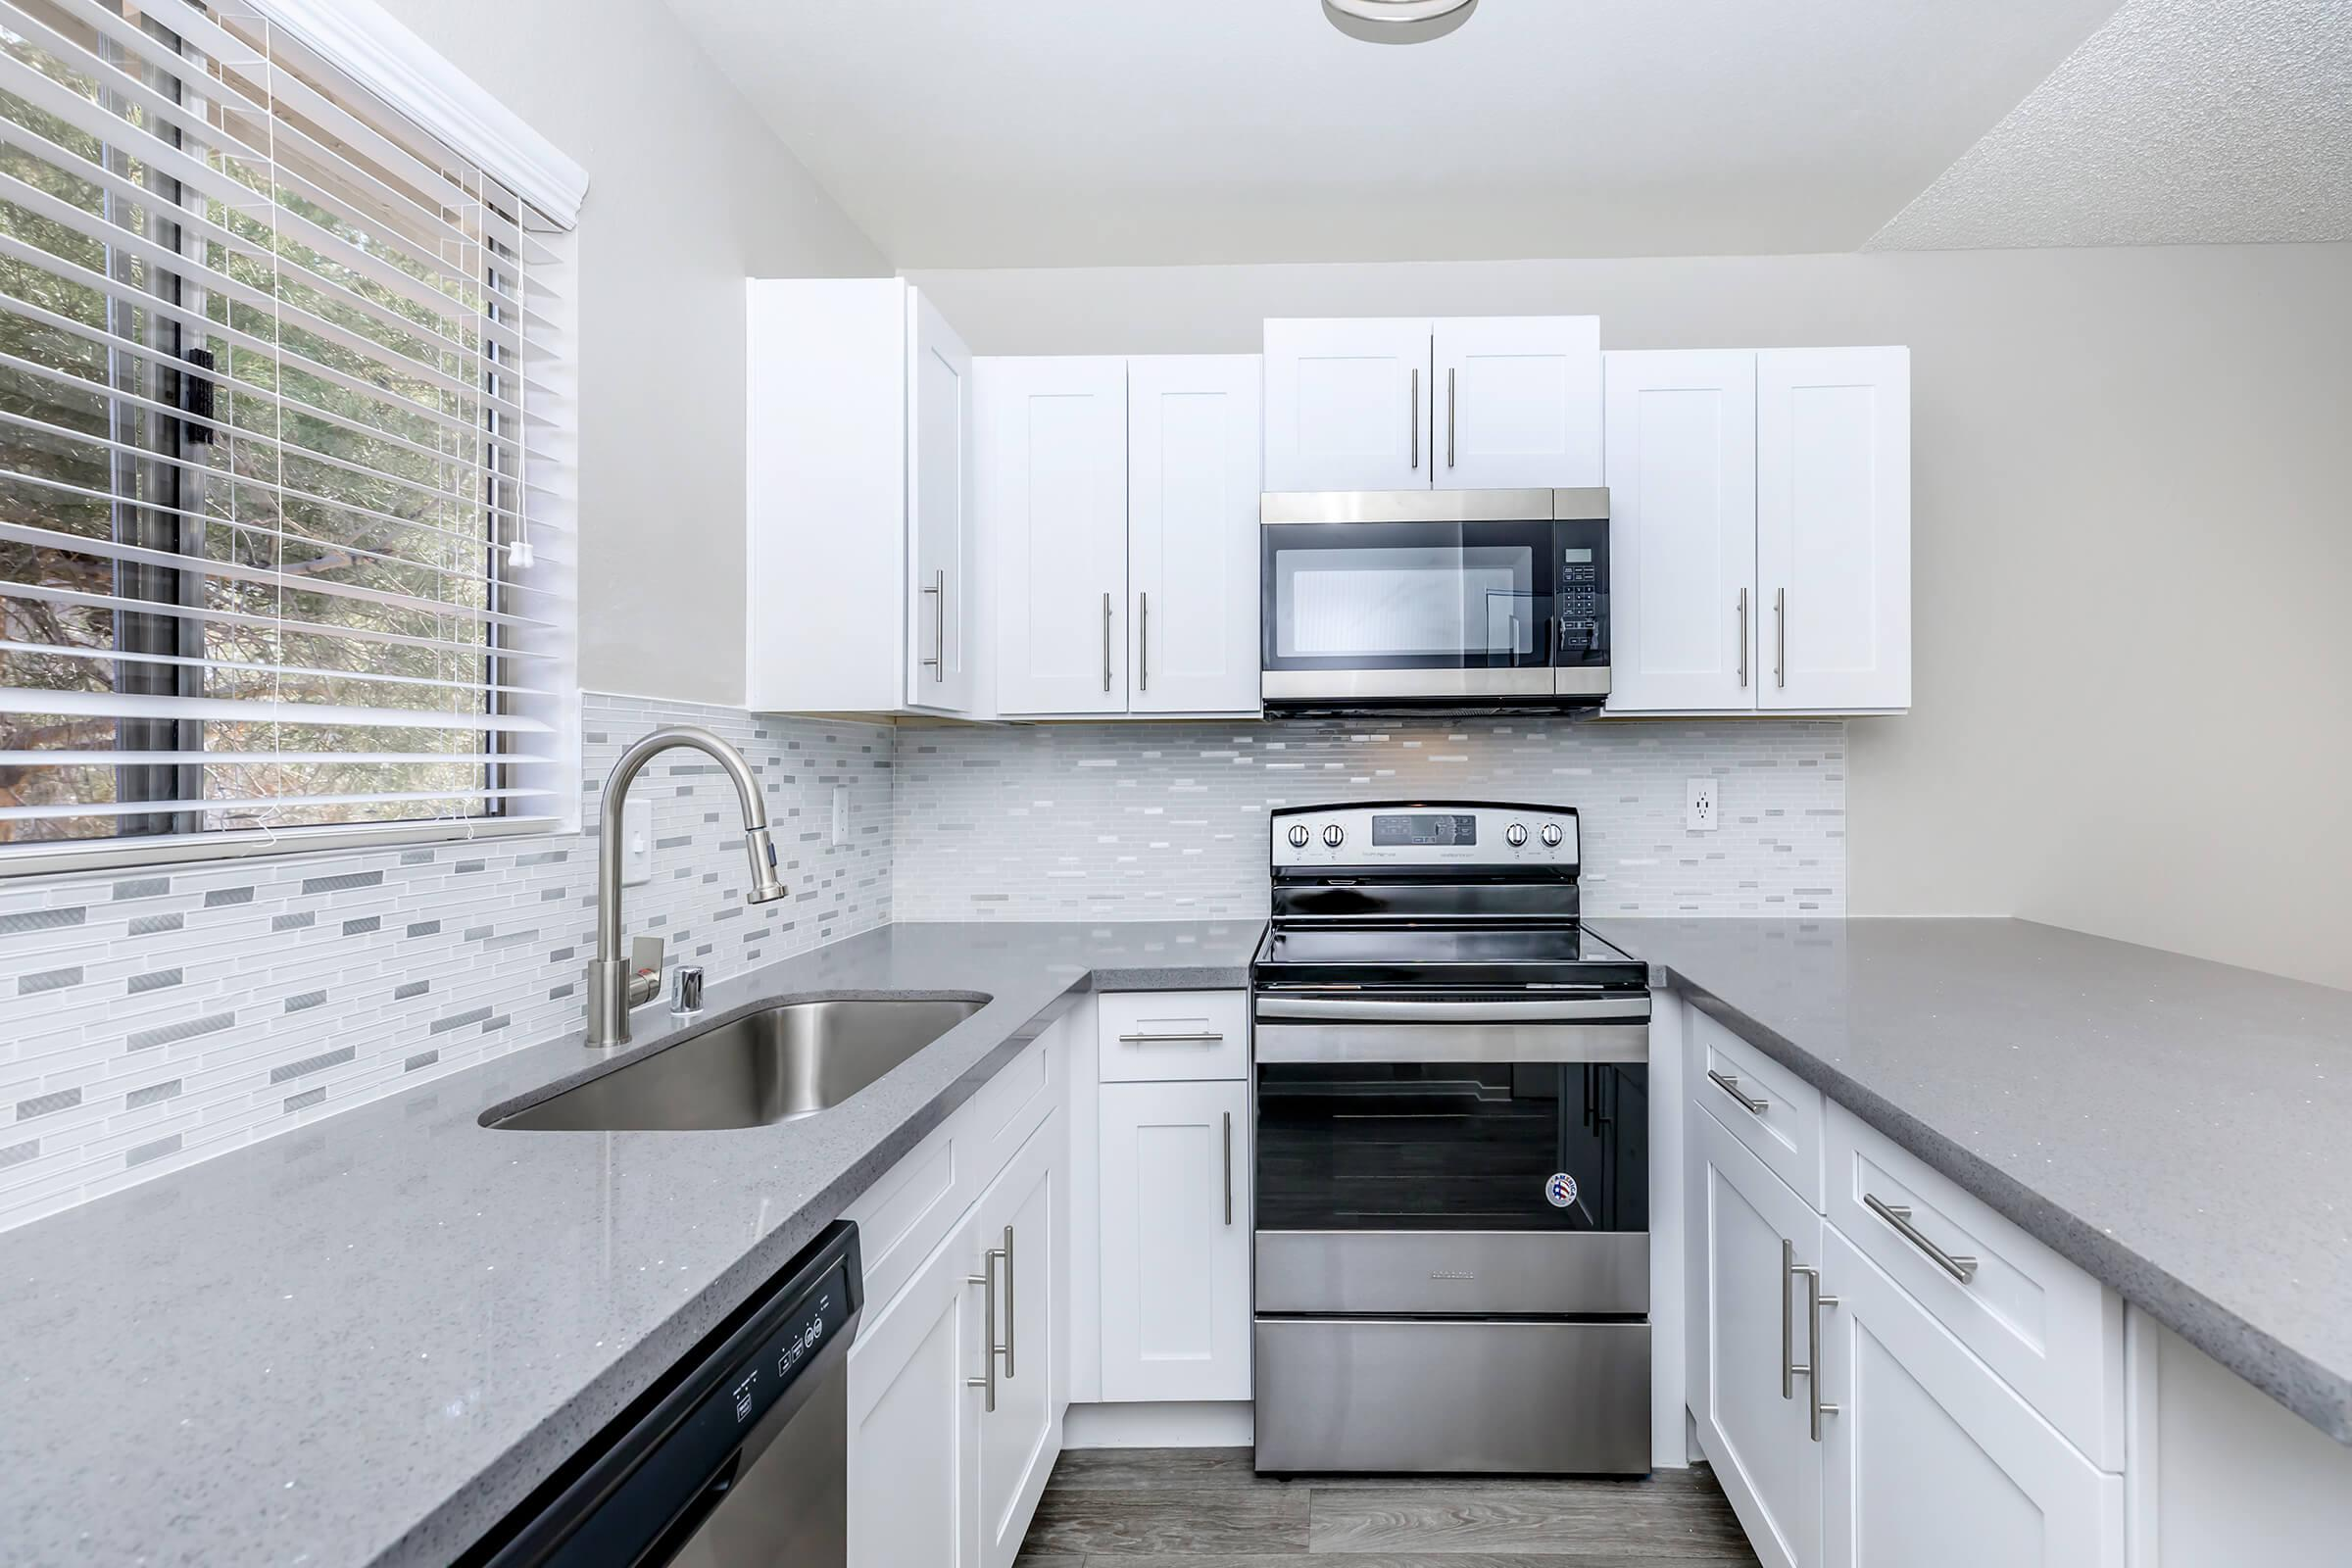 a kitchen with white cabinets and black counter